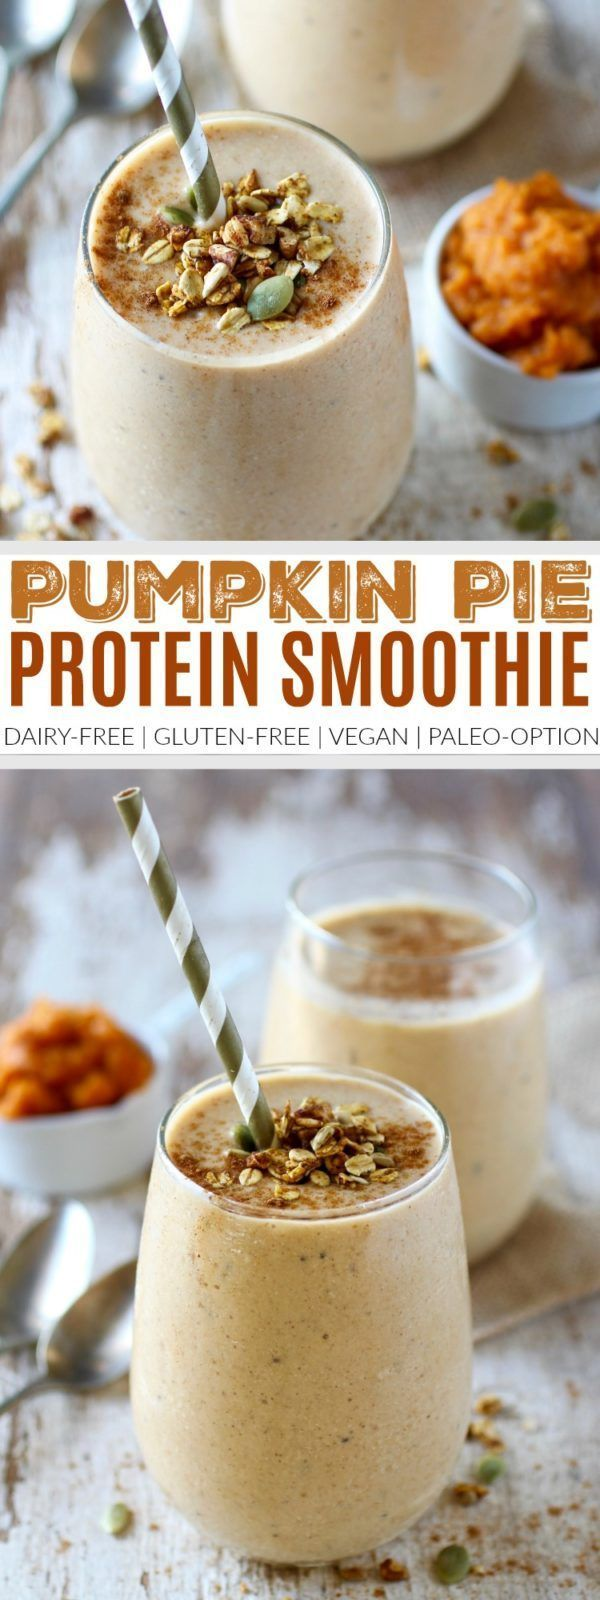 Pumpkin Pie Protein Smoothie | healthy smoothie recipes | homemade smoothie recipes | pumpkin flavored smoothie | dairy free smoothie recipe | gluten free smoothies | vegan smoothie recipes | paleo smoothie recipes | fall inspired recipe ideas || The Real Food Dietitians